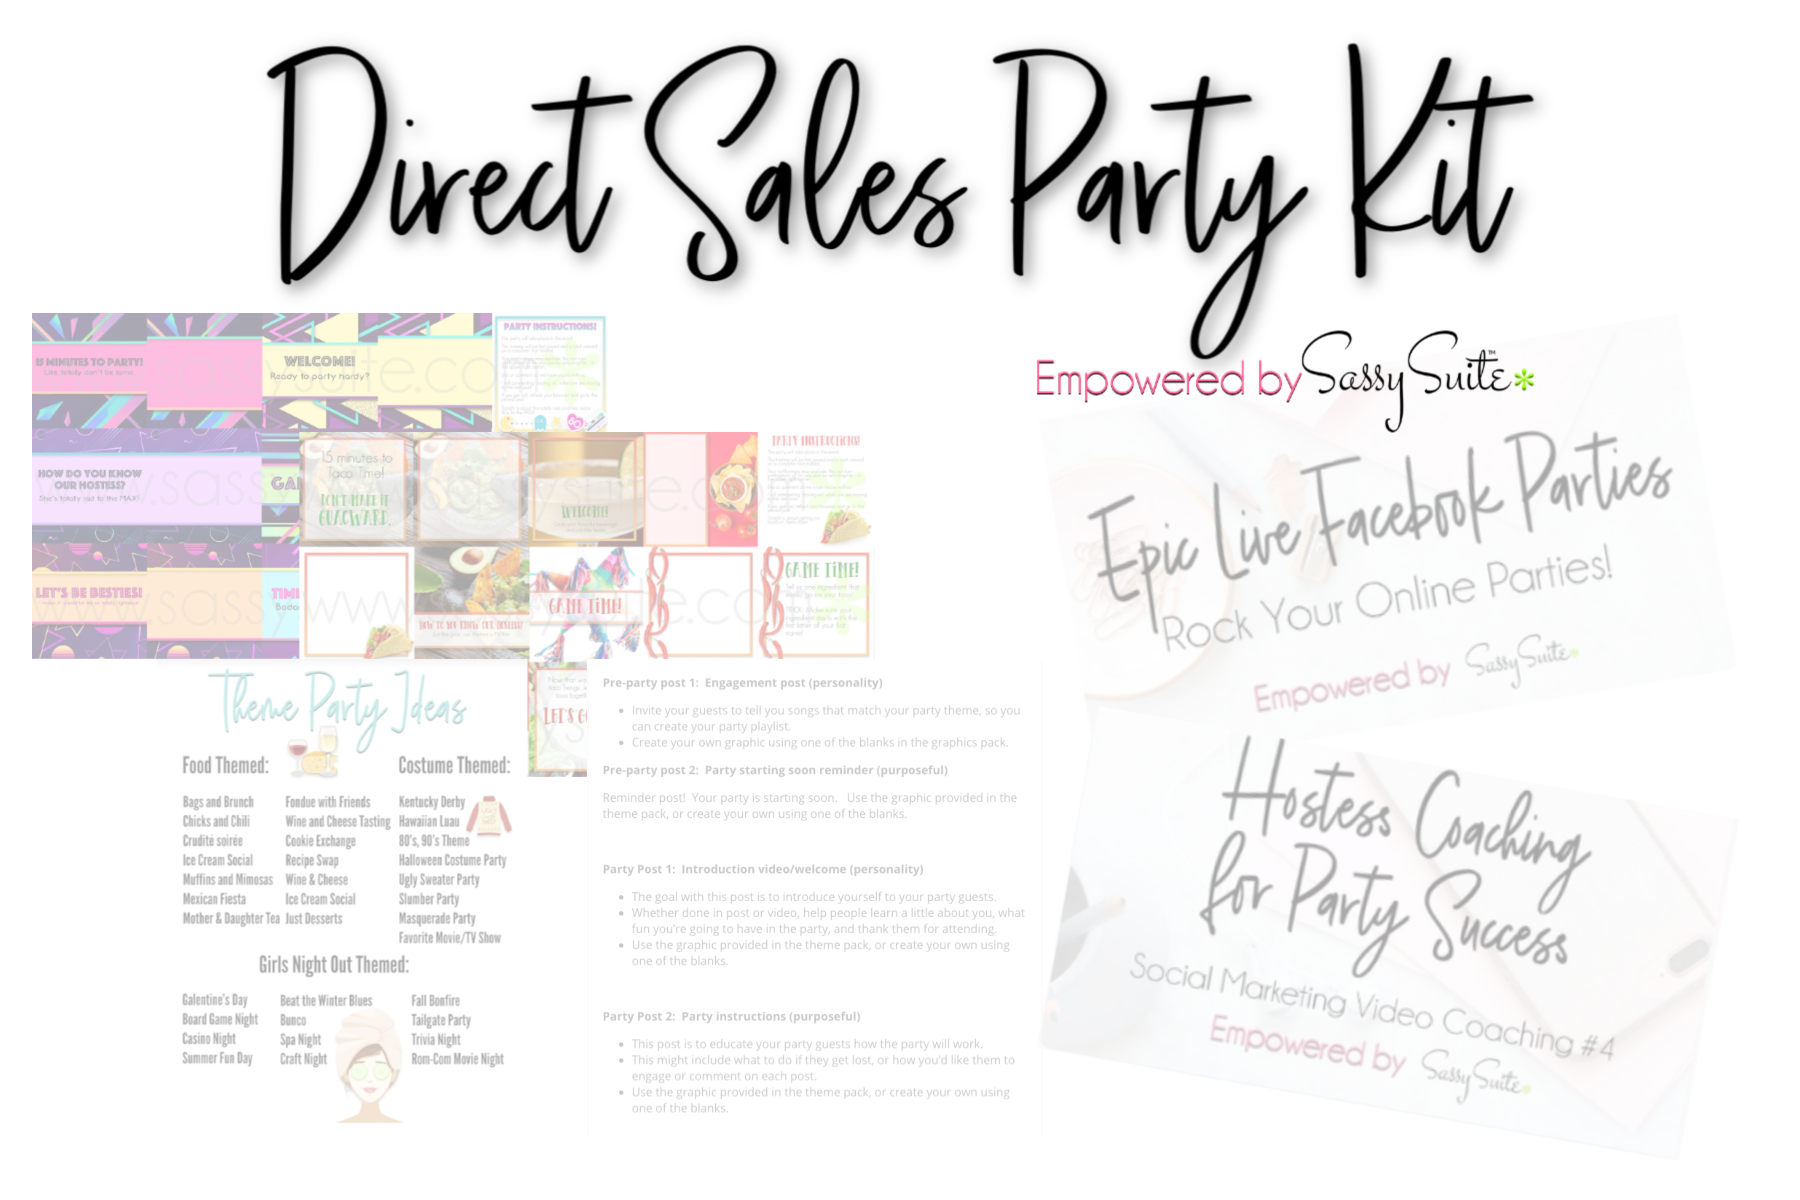 The Ultimate Direct Sales Party Kit